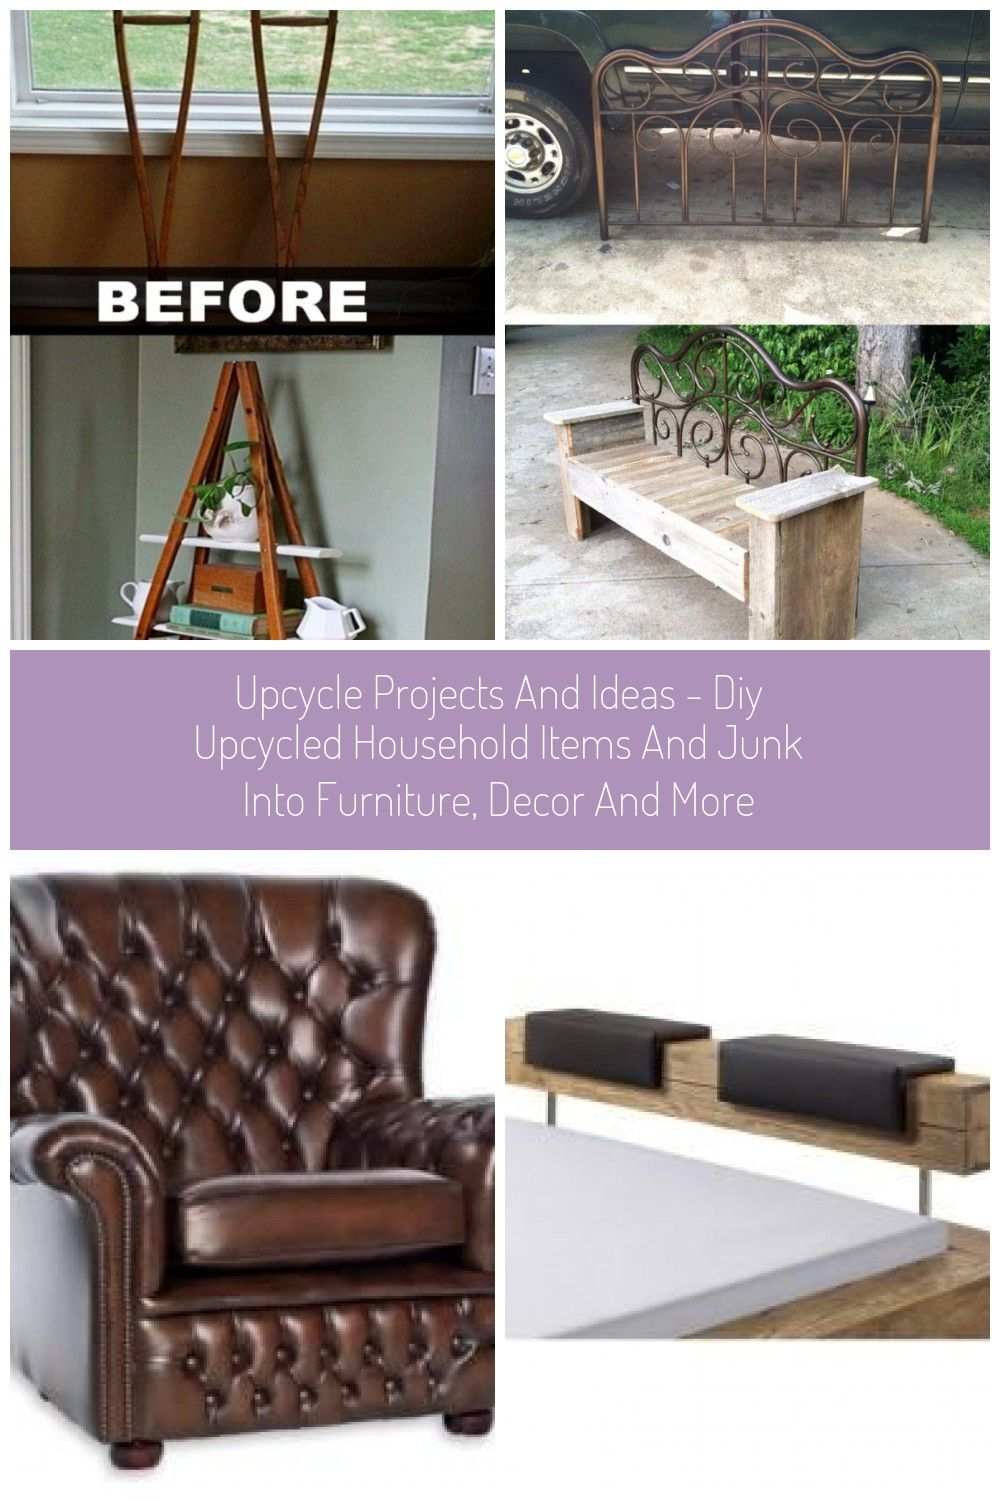 Upcycle Projects And Ideas Diy Upcycled Household Items And Junk